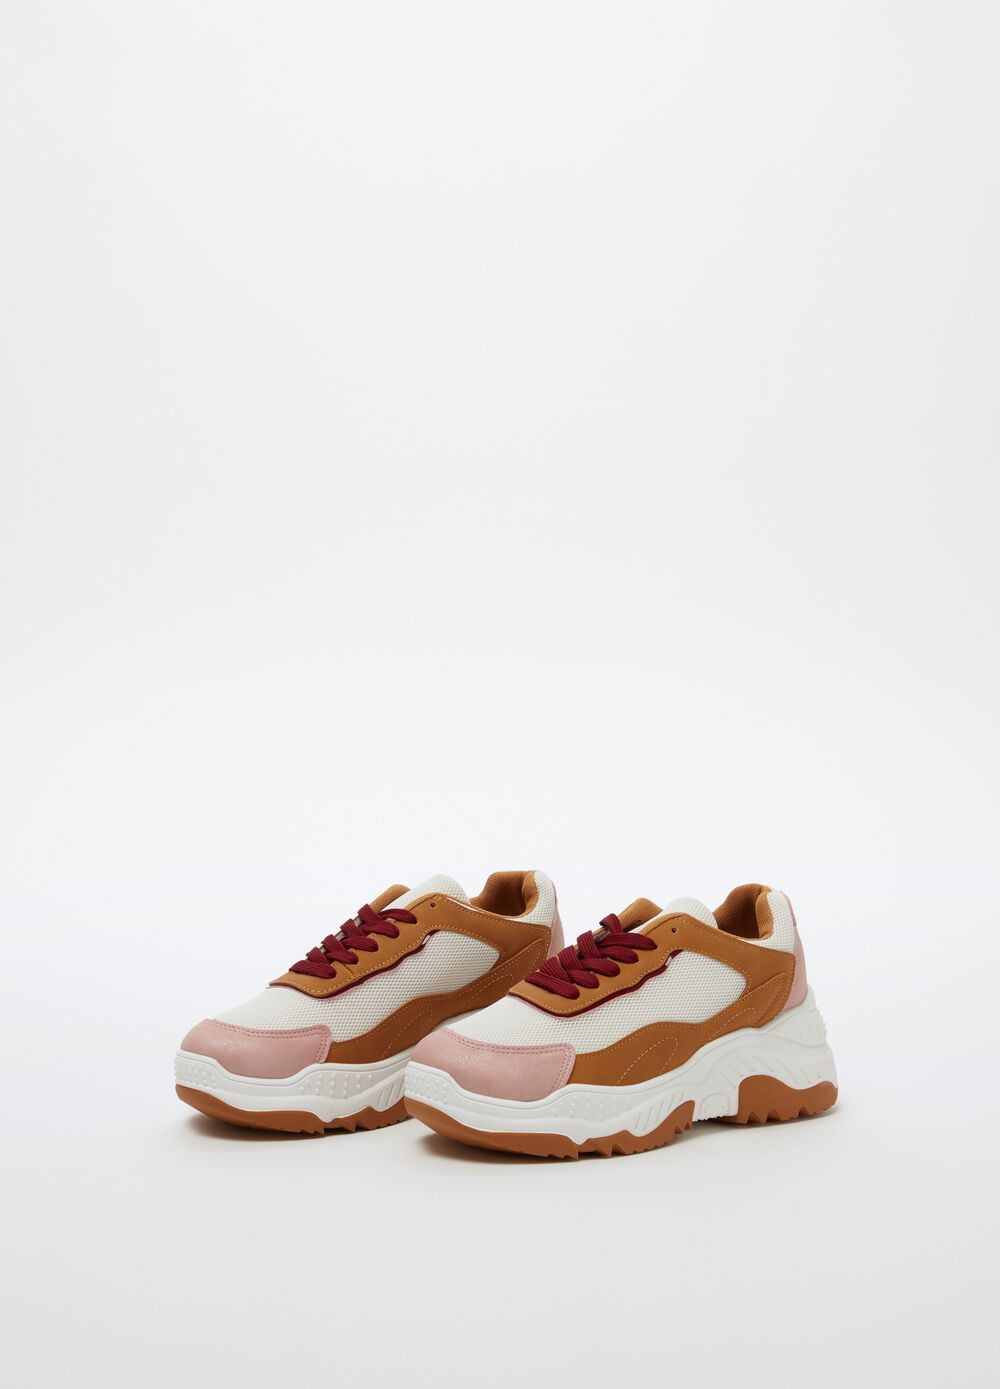 Chunky sneakers with thick sole and laces